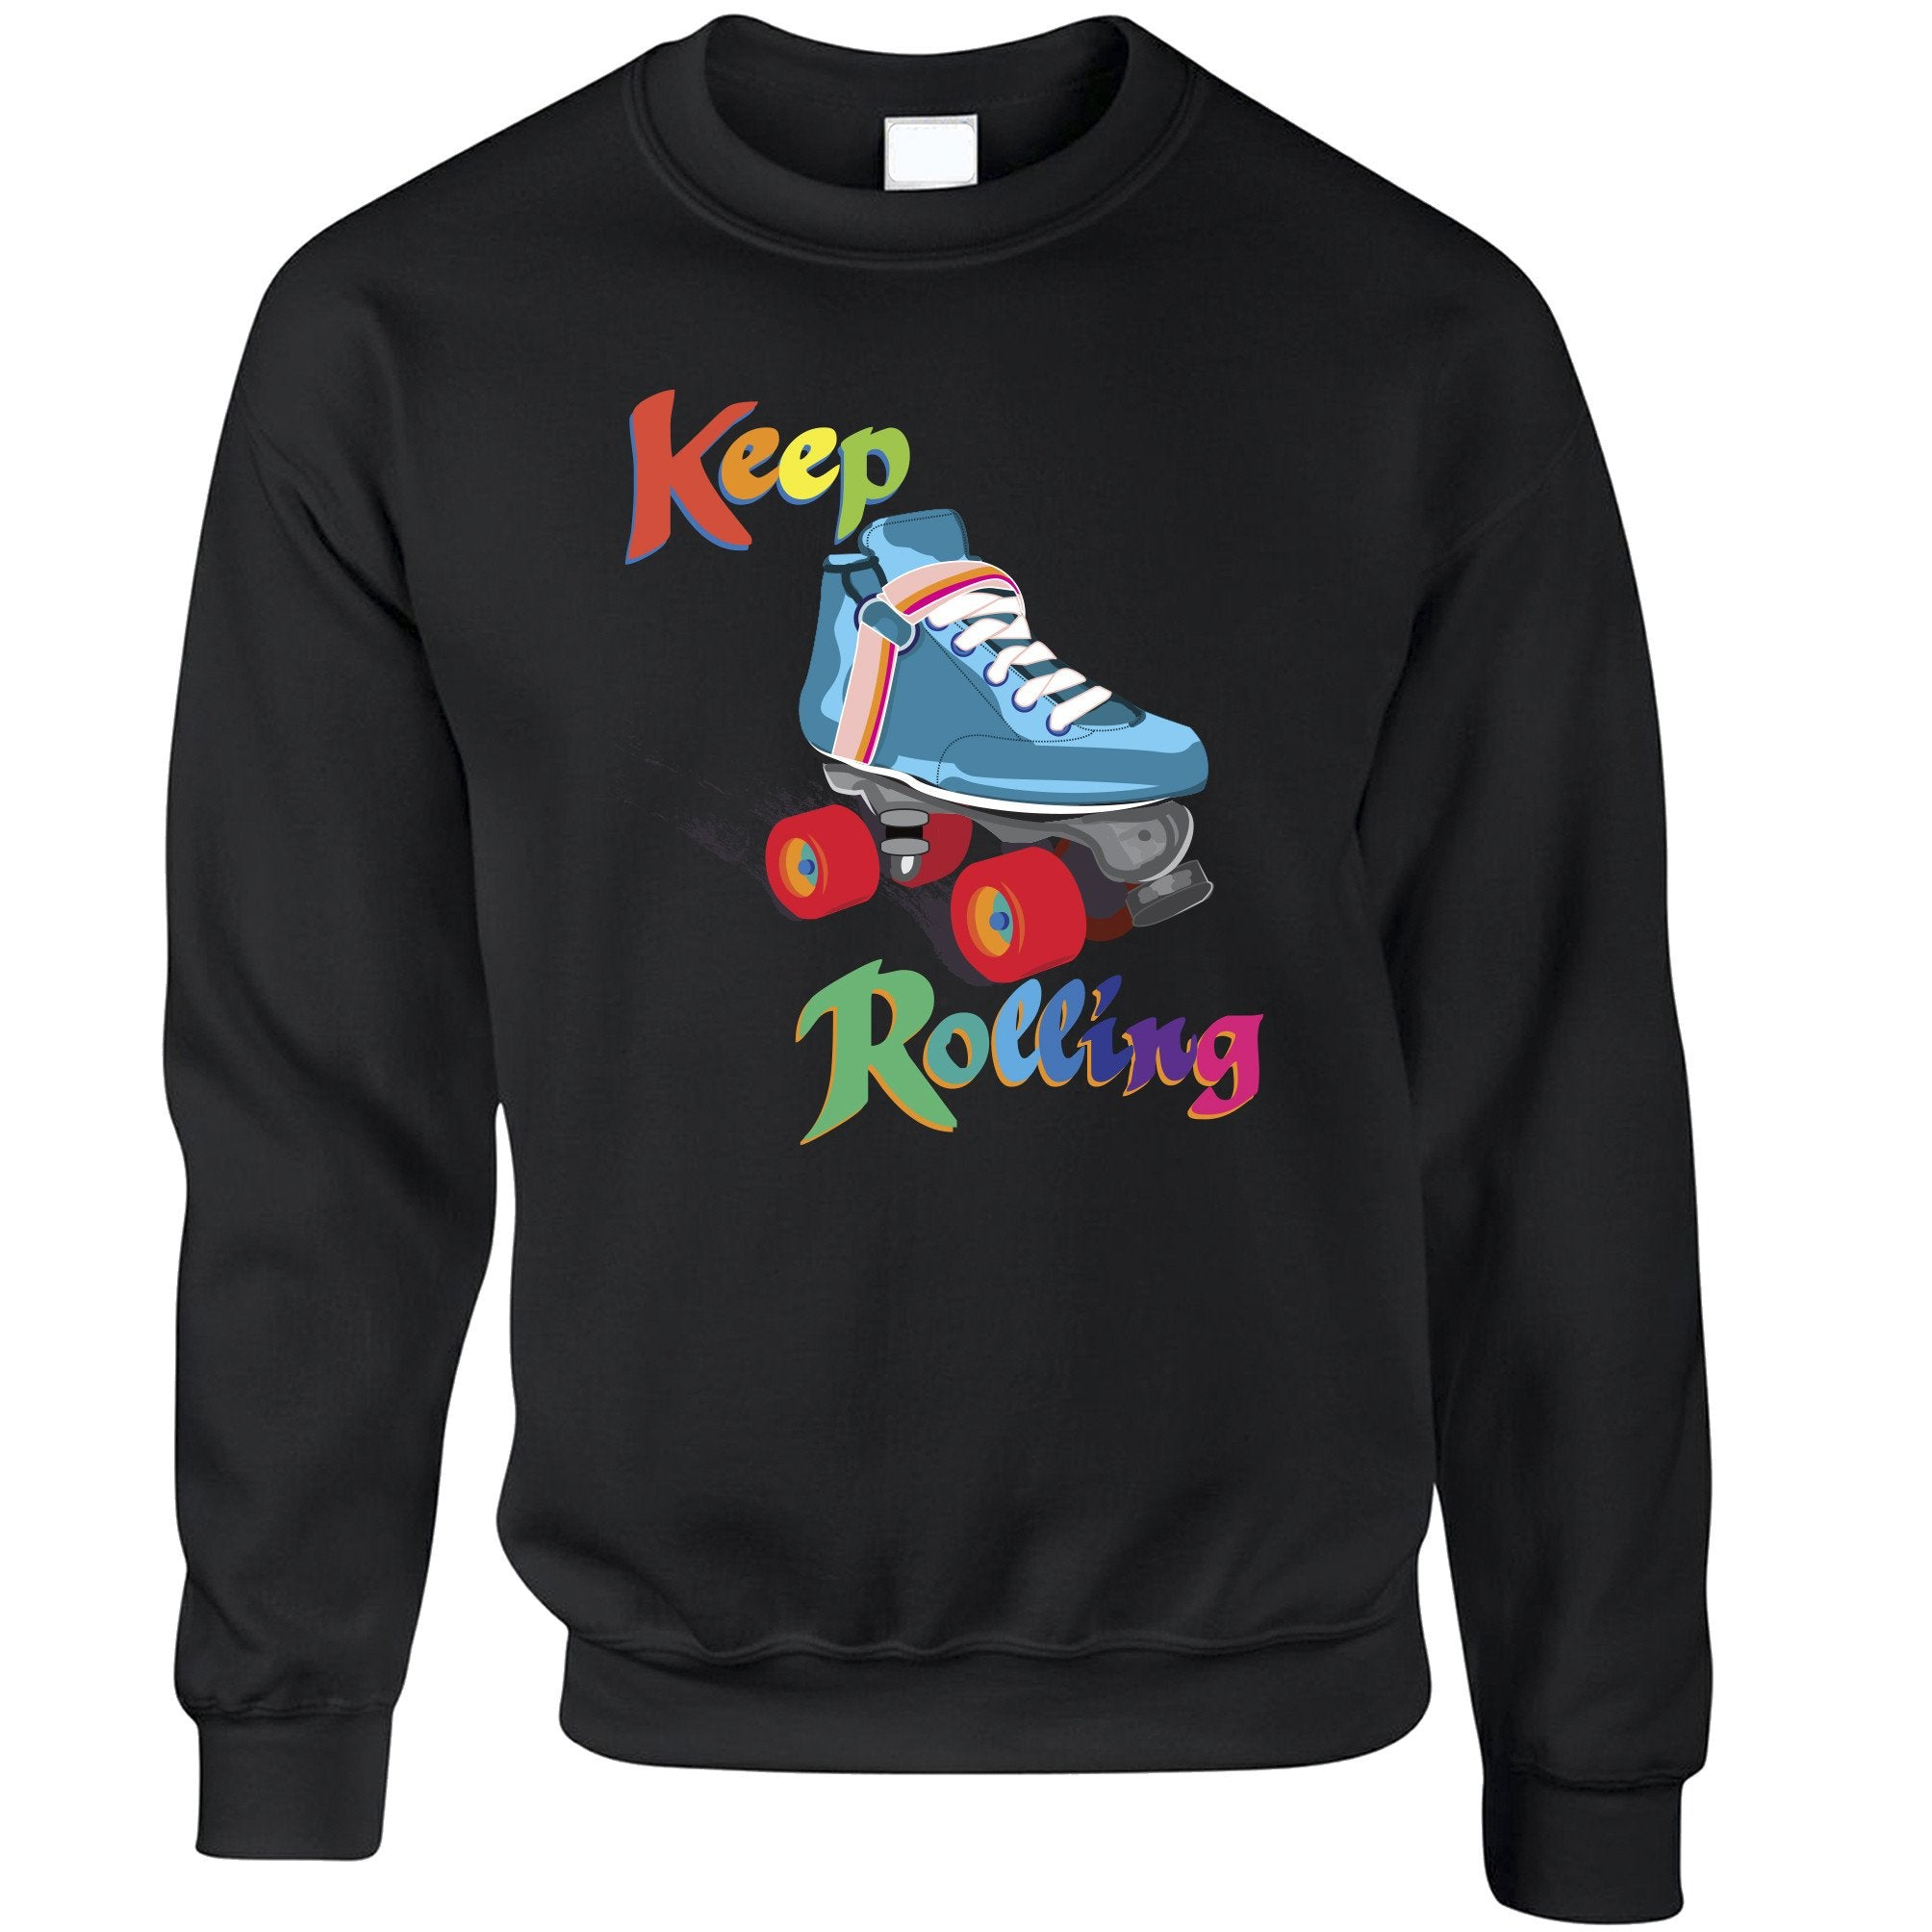 Vintage Skating Jumper Keep On Rolling Pun Joke Sweatshirt Sweater